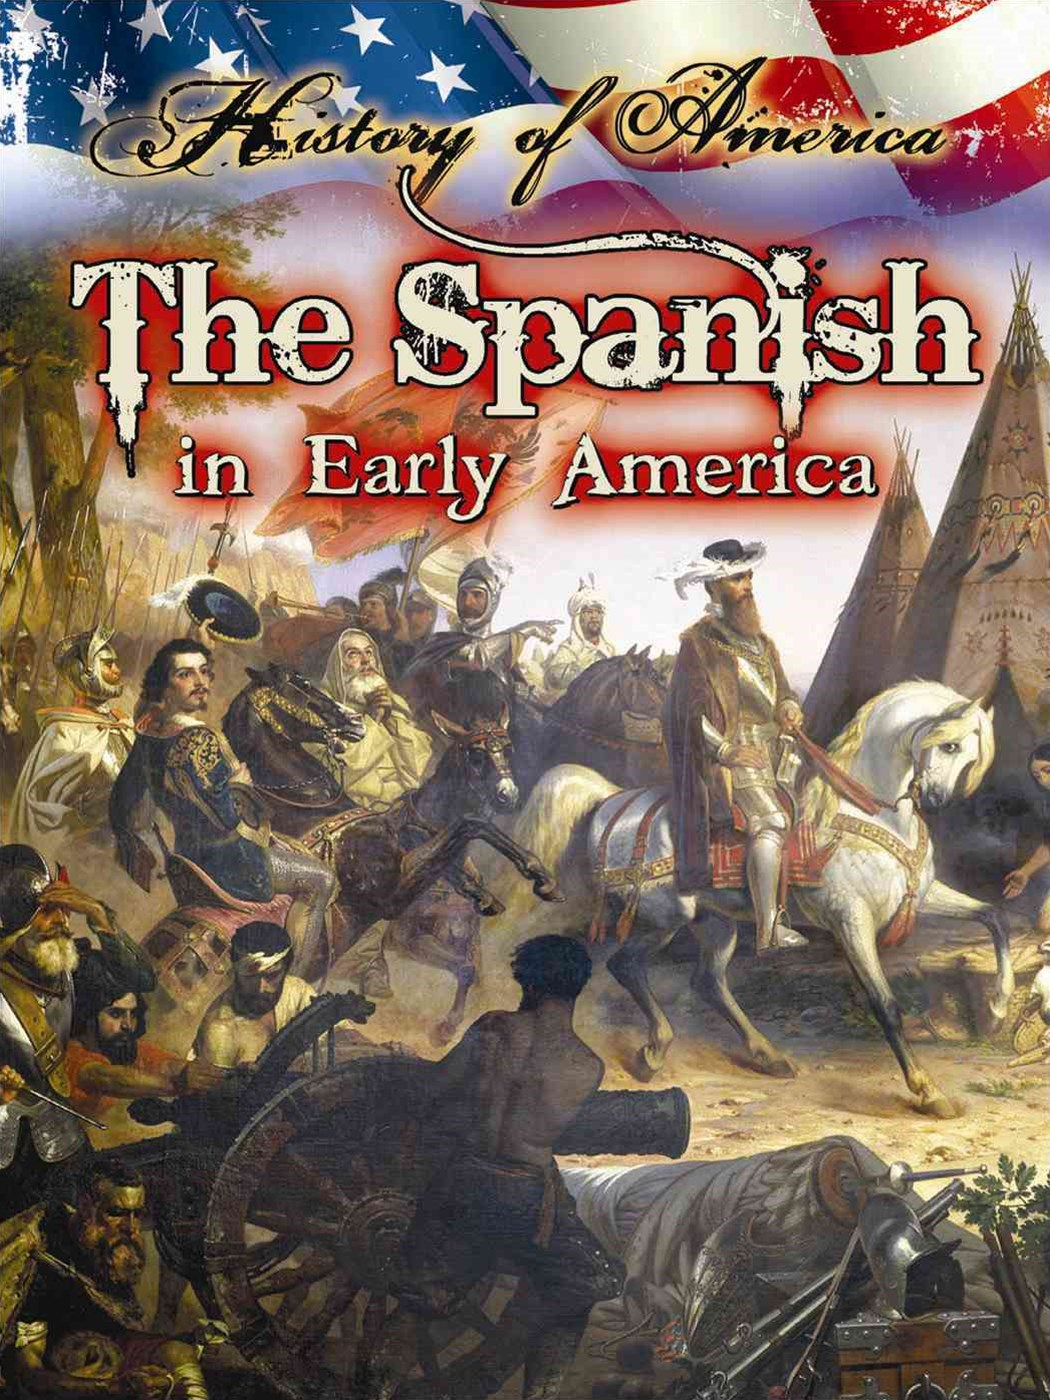 The Spanish in Early America